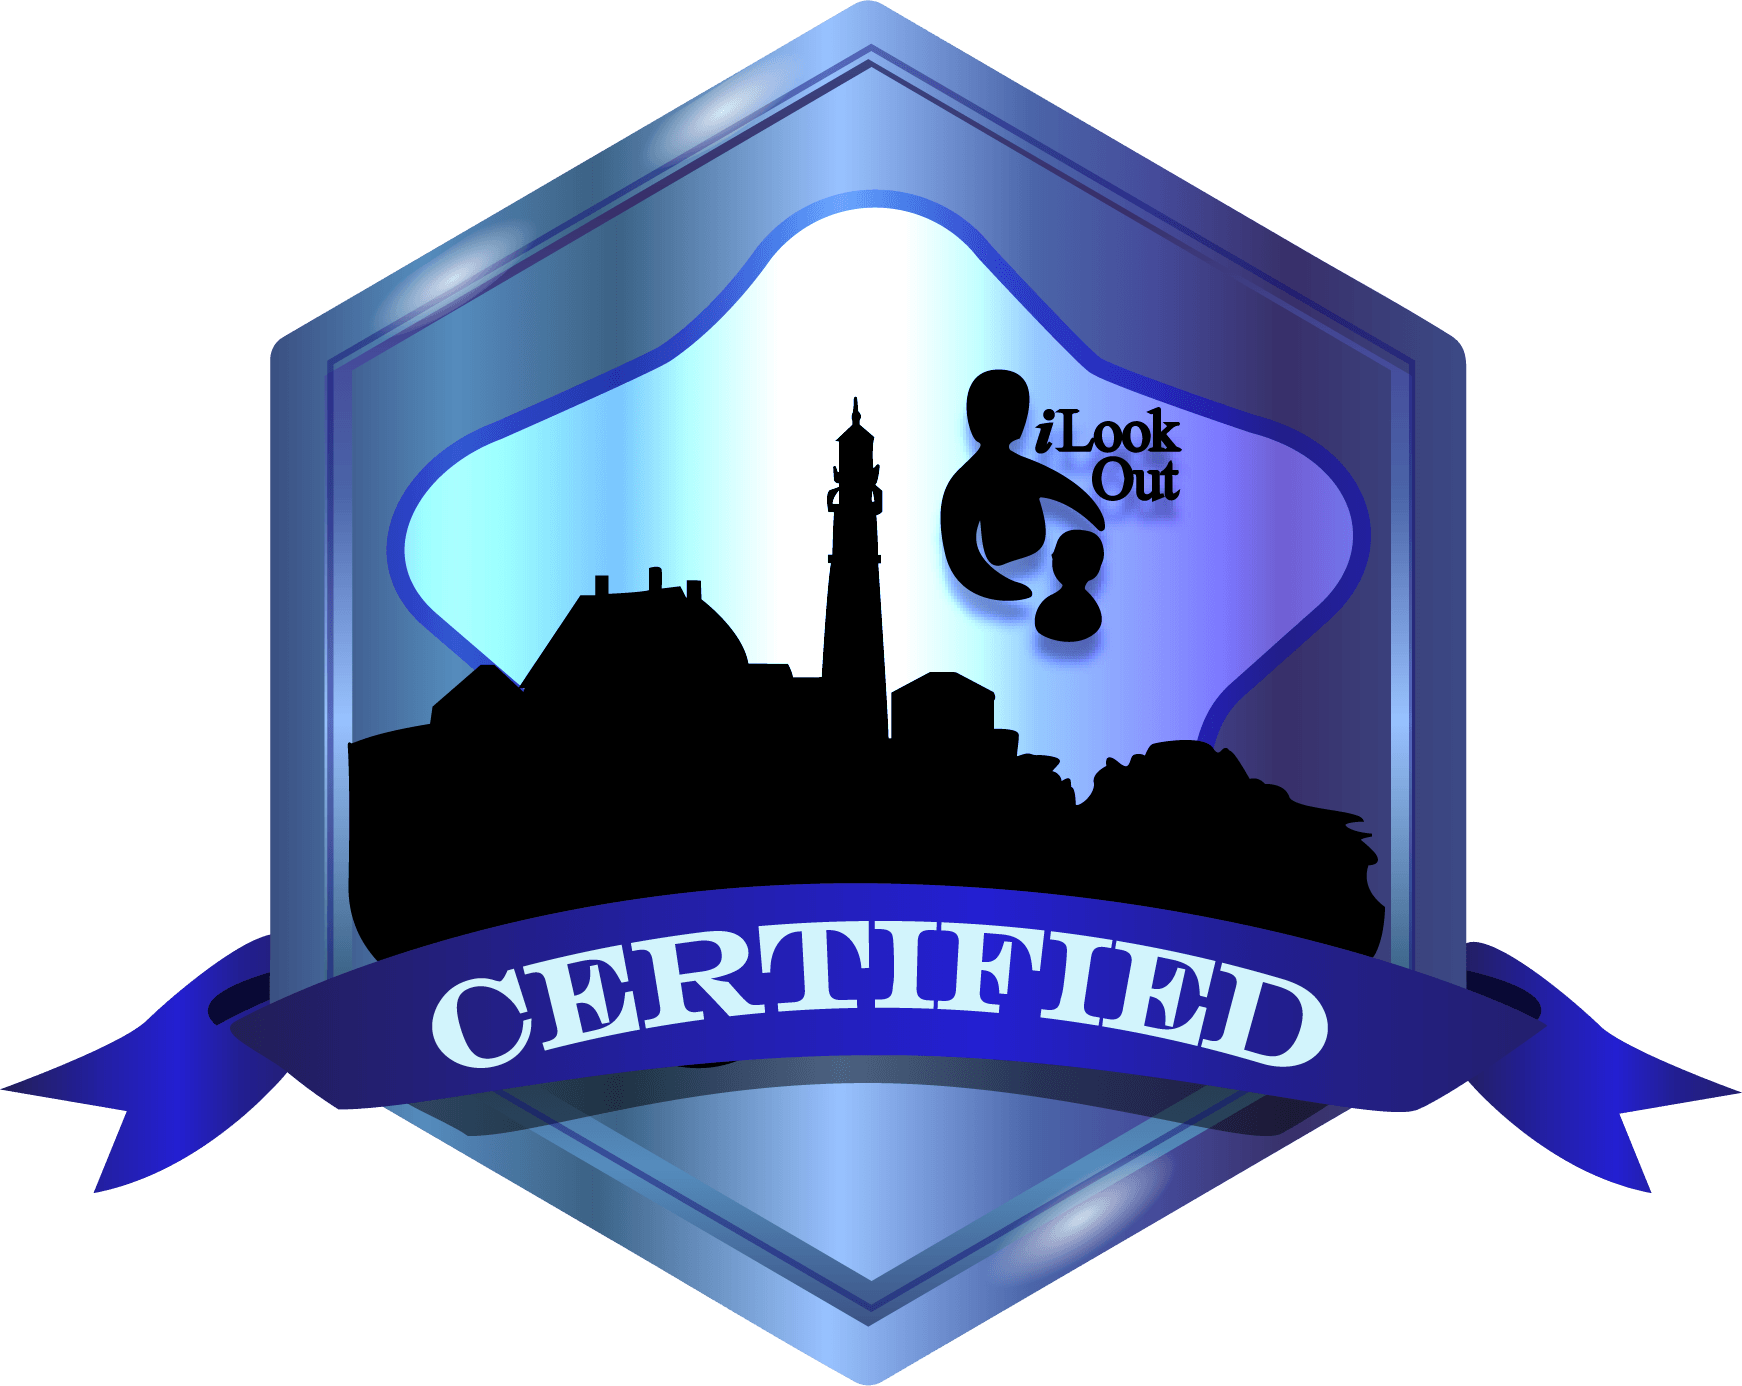 certified_badge_final.png